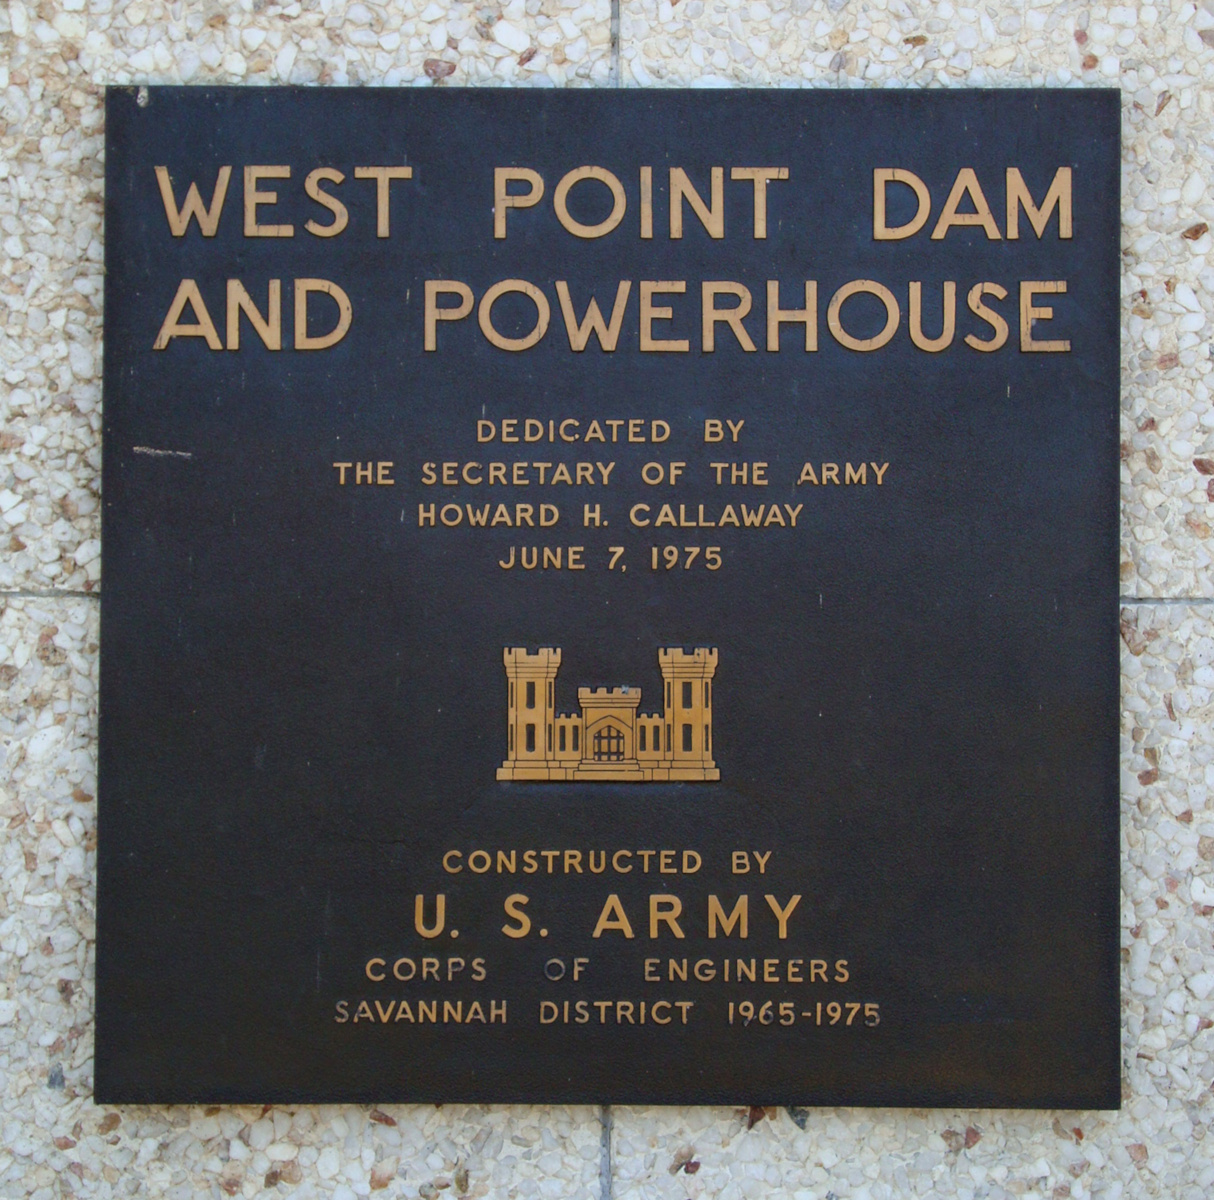 West Point Dam and Powerhouse dedication plaque (1975)